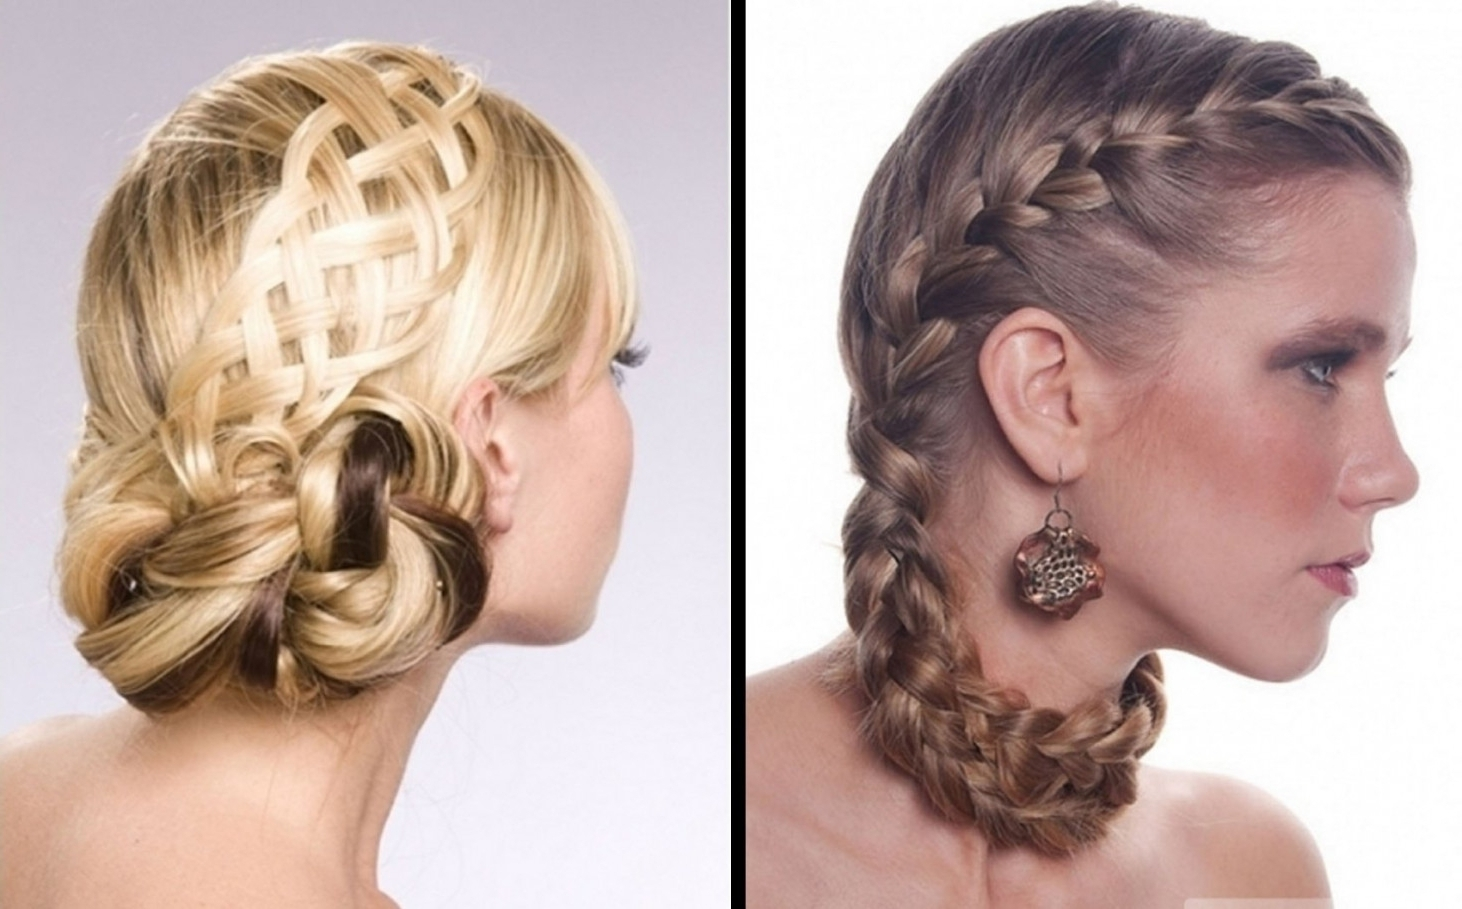 Widely Used Wedding Hairstyles For Long Thin Hair Intended For Wedding Hairstyles For Thin Hair Pinterest (View 15 of 15)